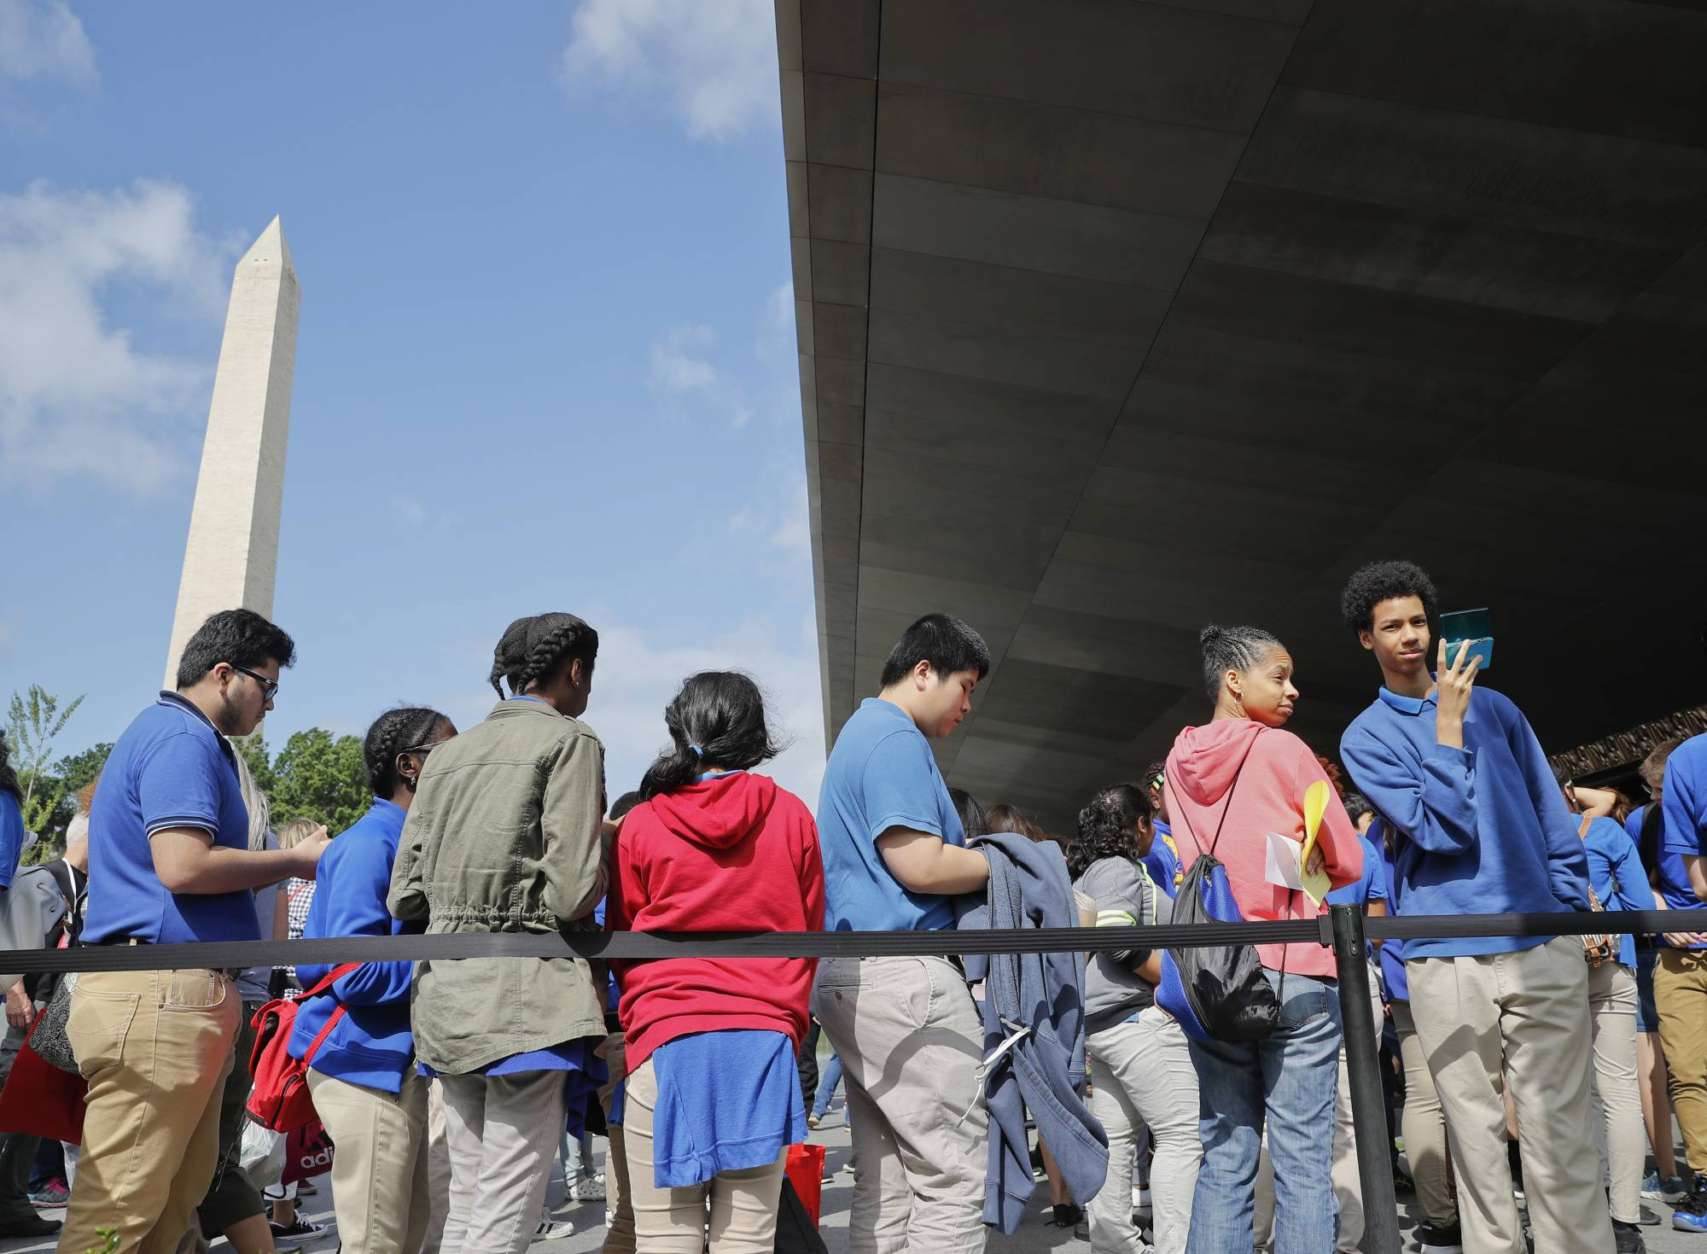 A school group waits in line to enter Smithsonian National Museum of African American History and Cultural on the National Mall in Washington, Monday, May 1, 2017. The hottest ticket in Washington right now is for the new museum, where thousands of tickets are snapped up each month within minutes of being released, a full seven months after the museum opened. (AP Photo/Pablo Martinez Monsivais)